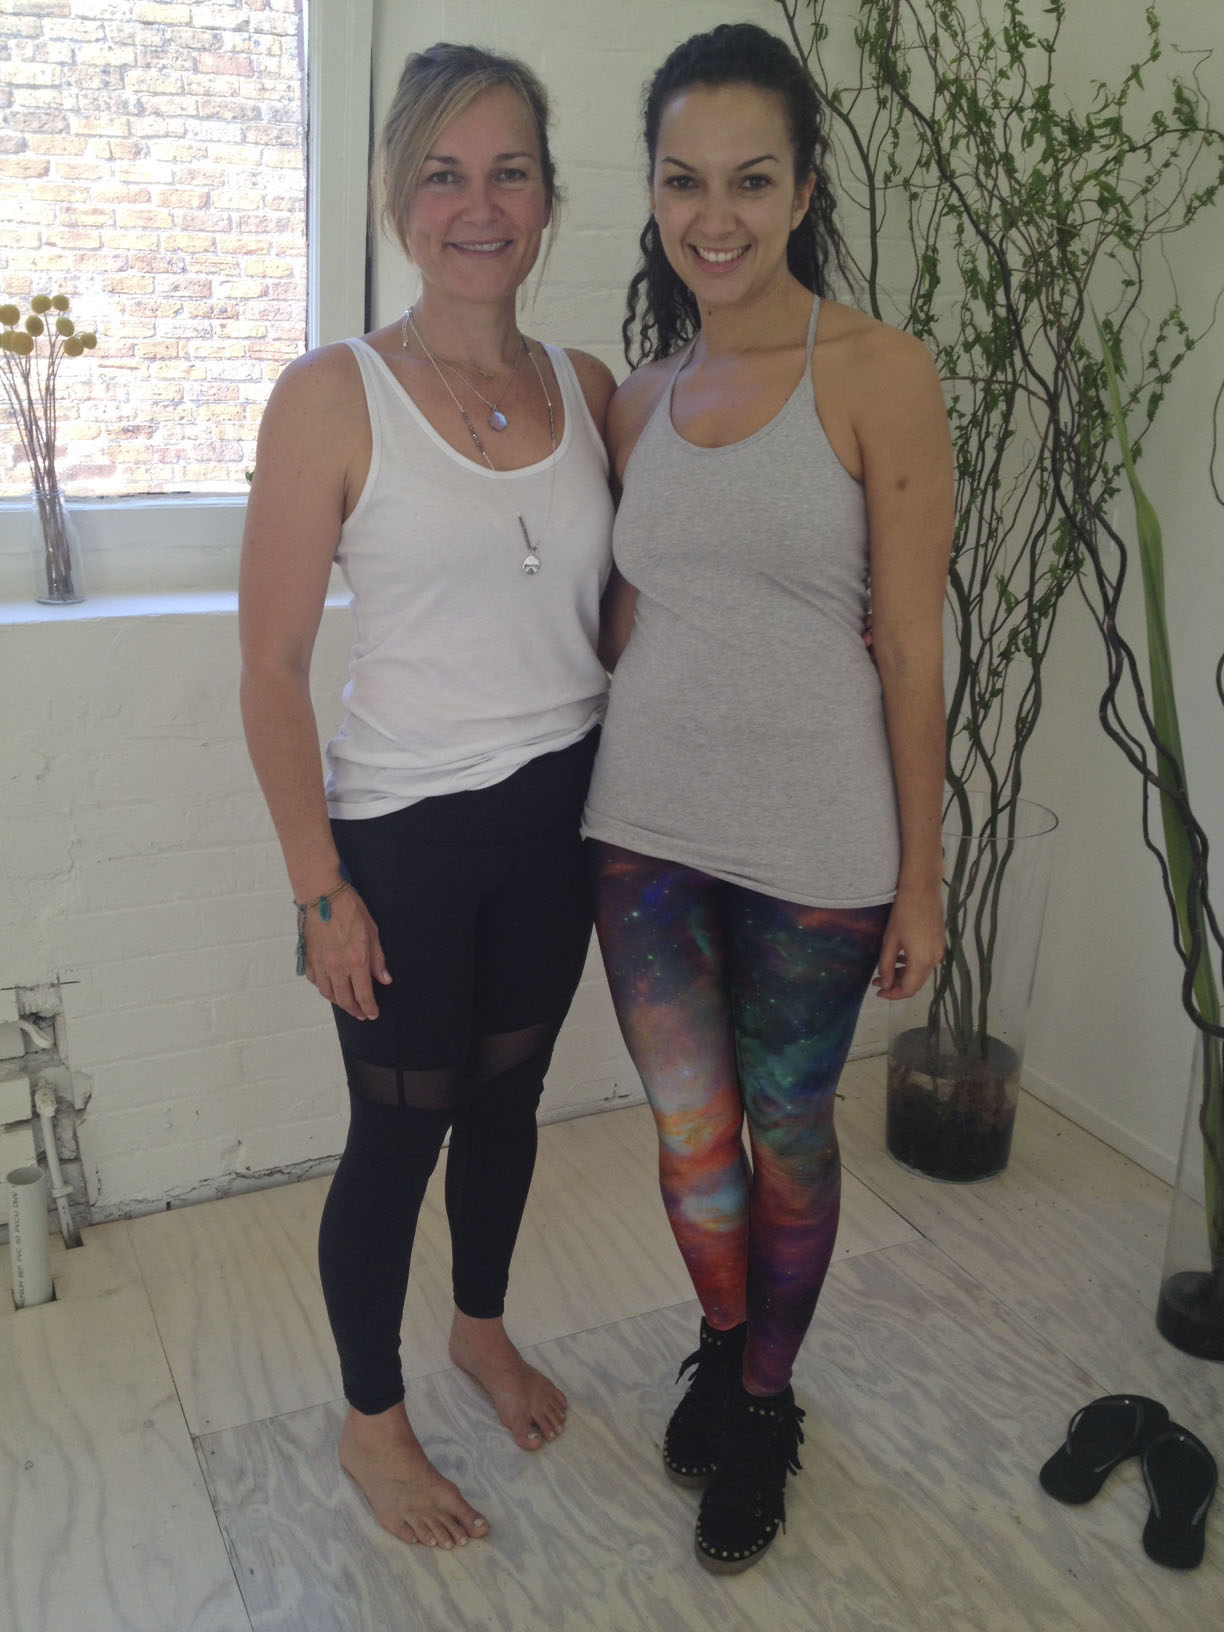 body flow yoga studio melbourne australia2789.jpg